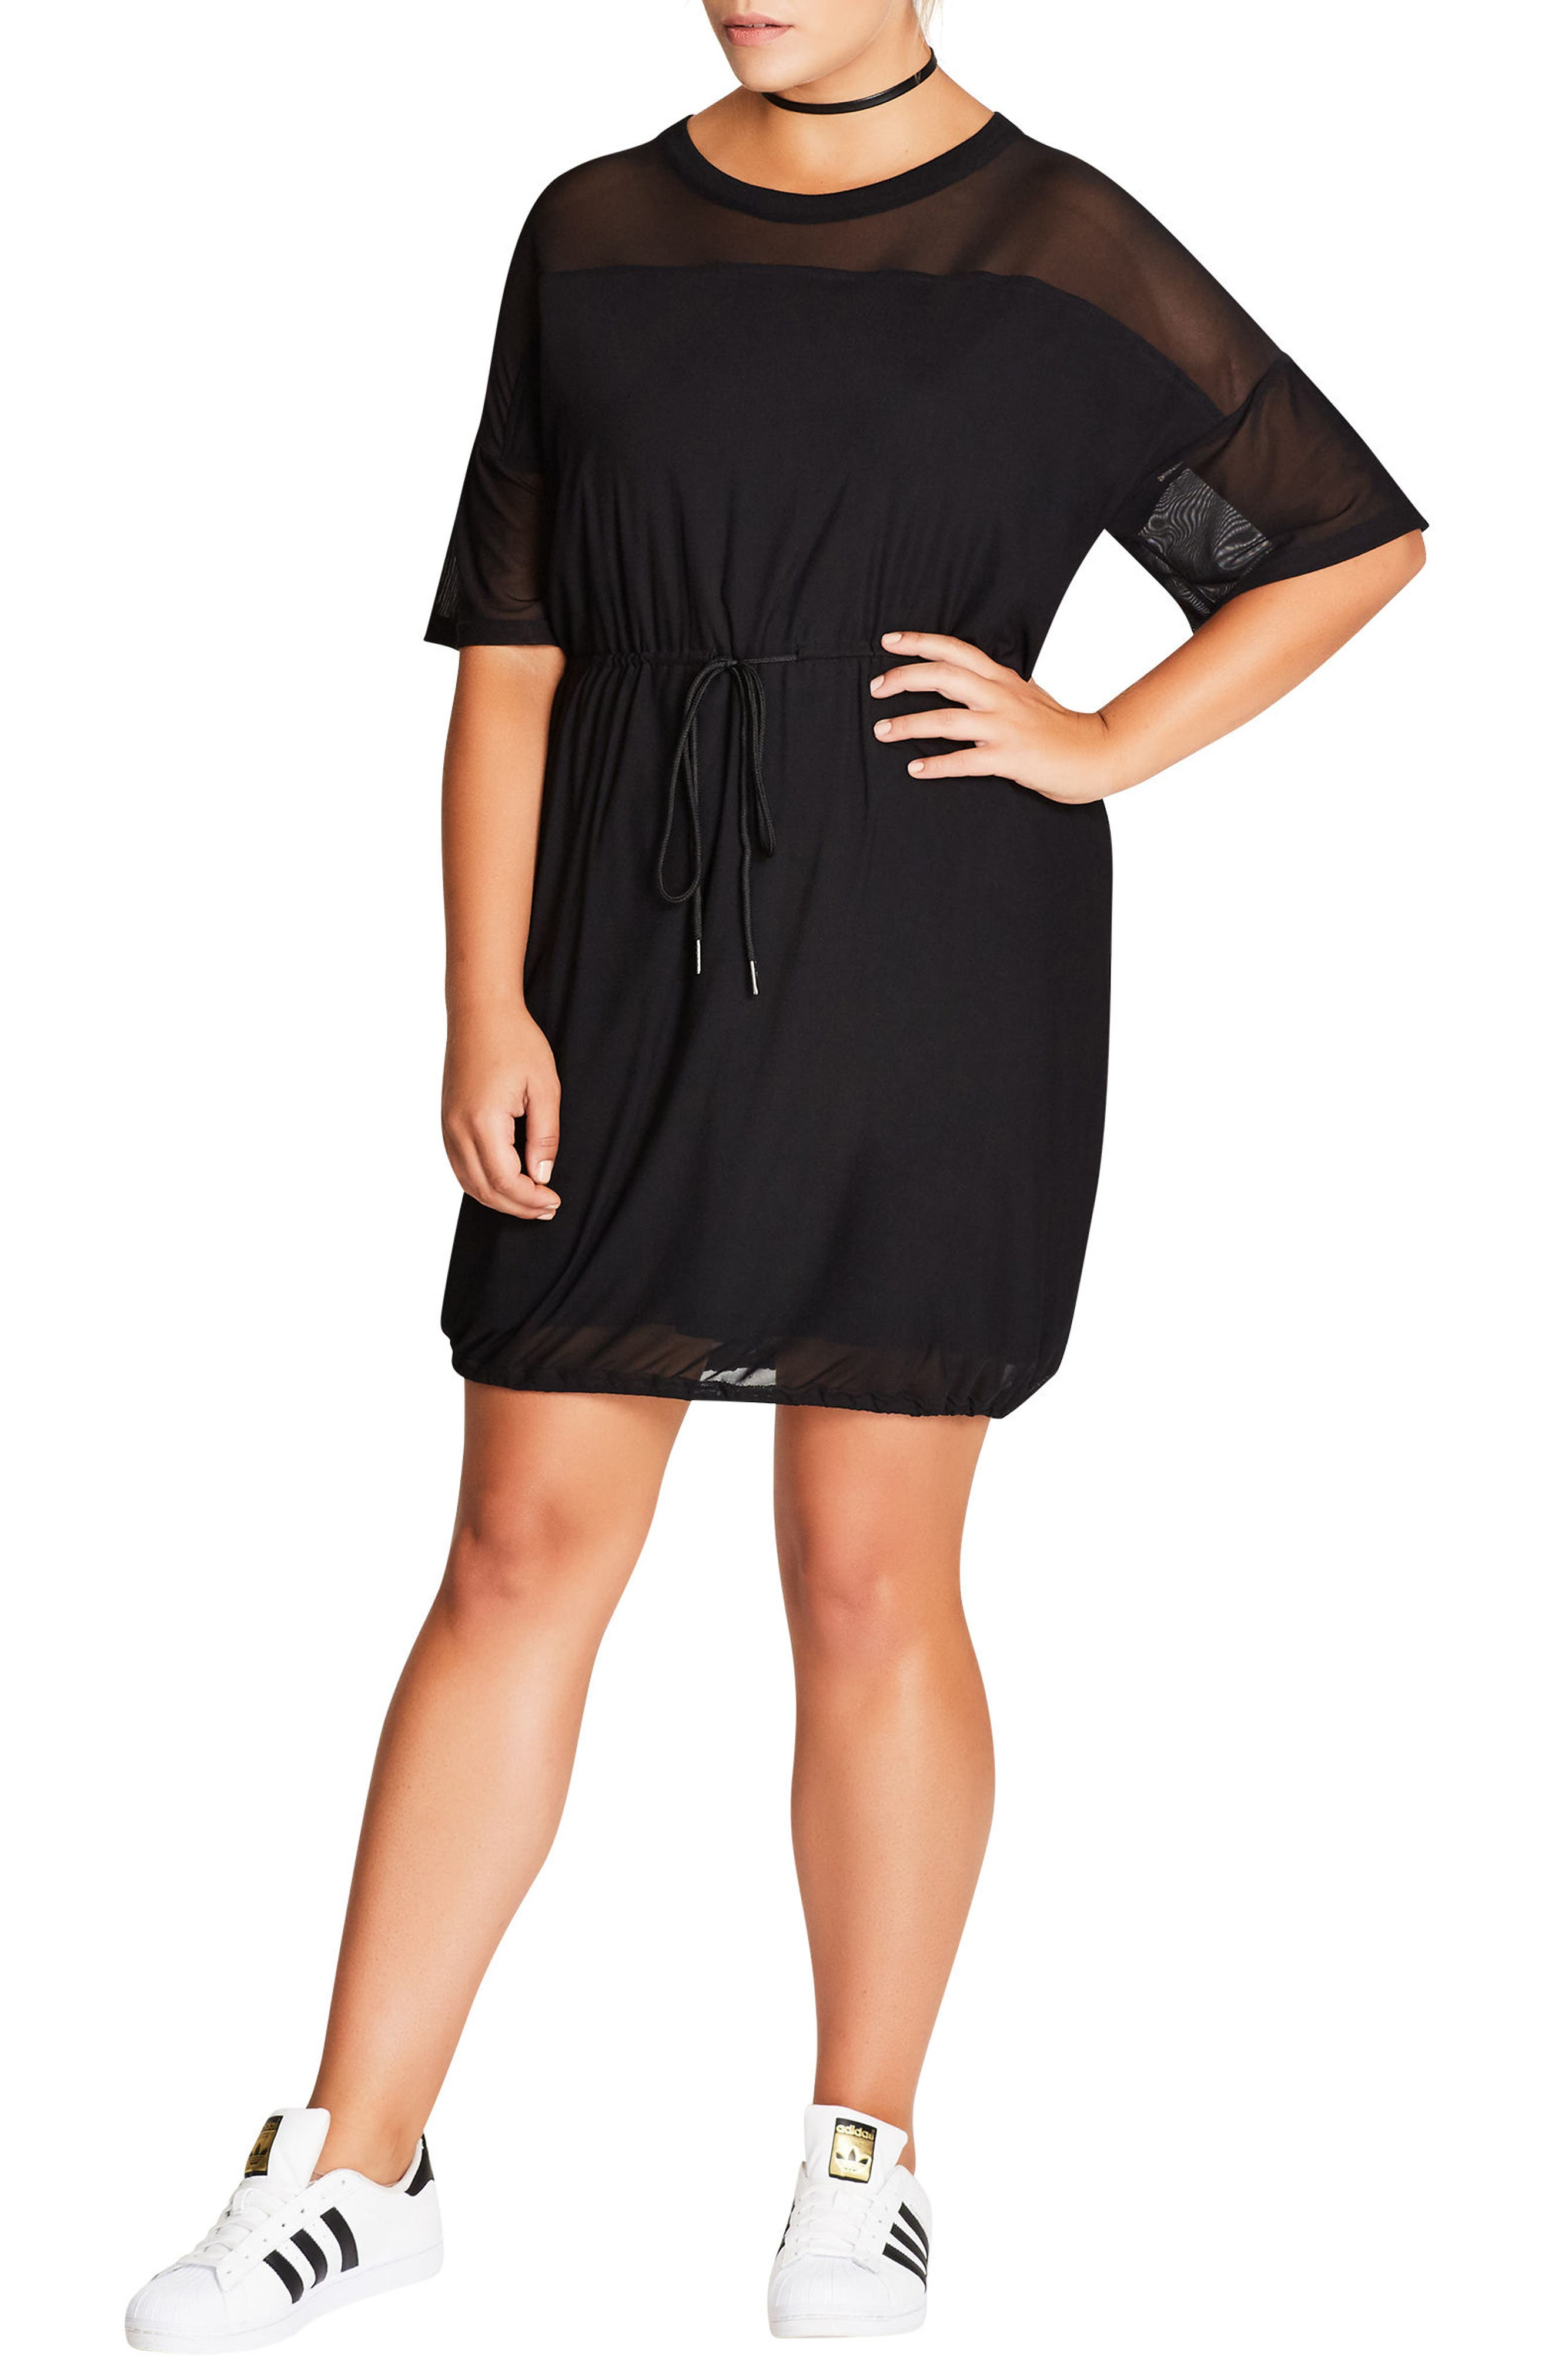 Sports One Tunic,                         Main,                         color, Black